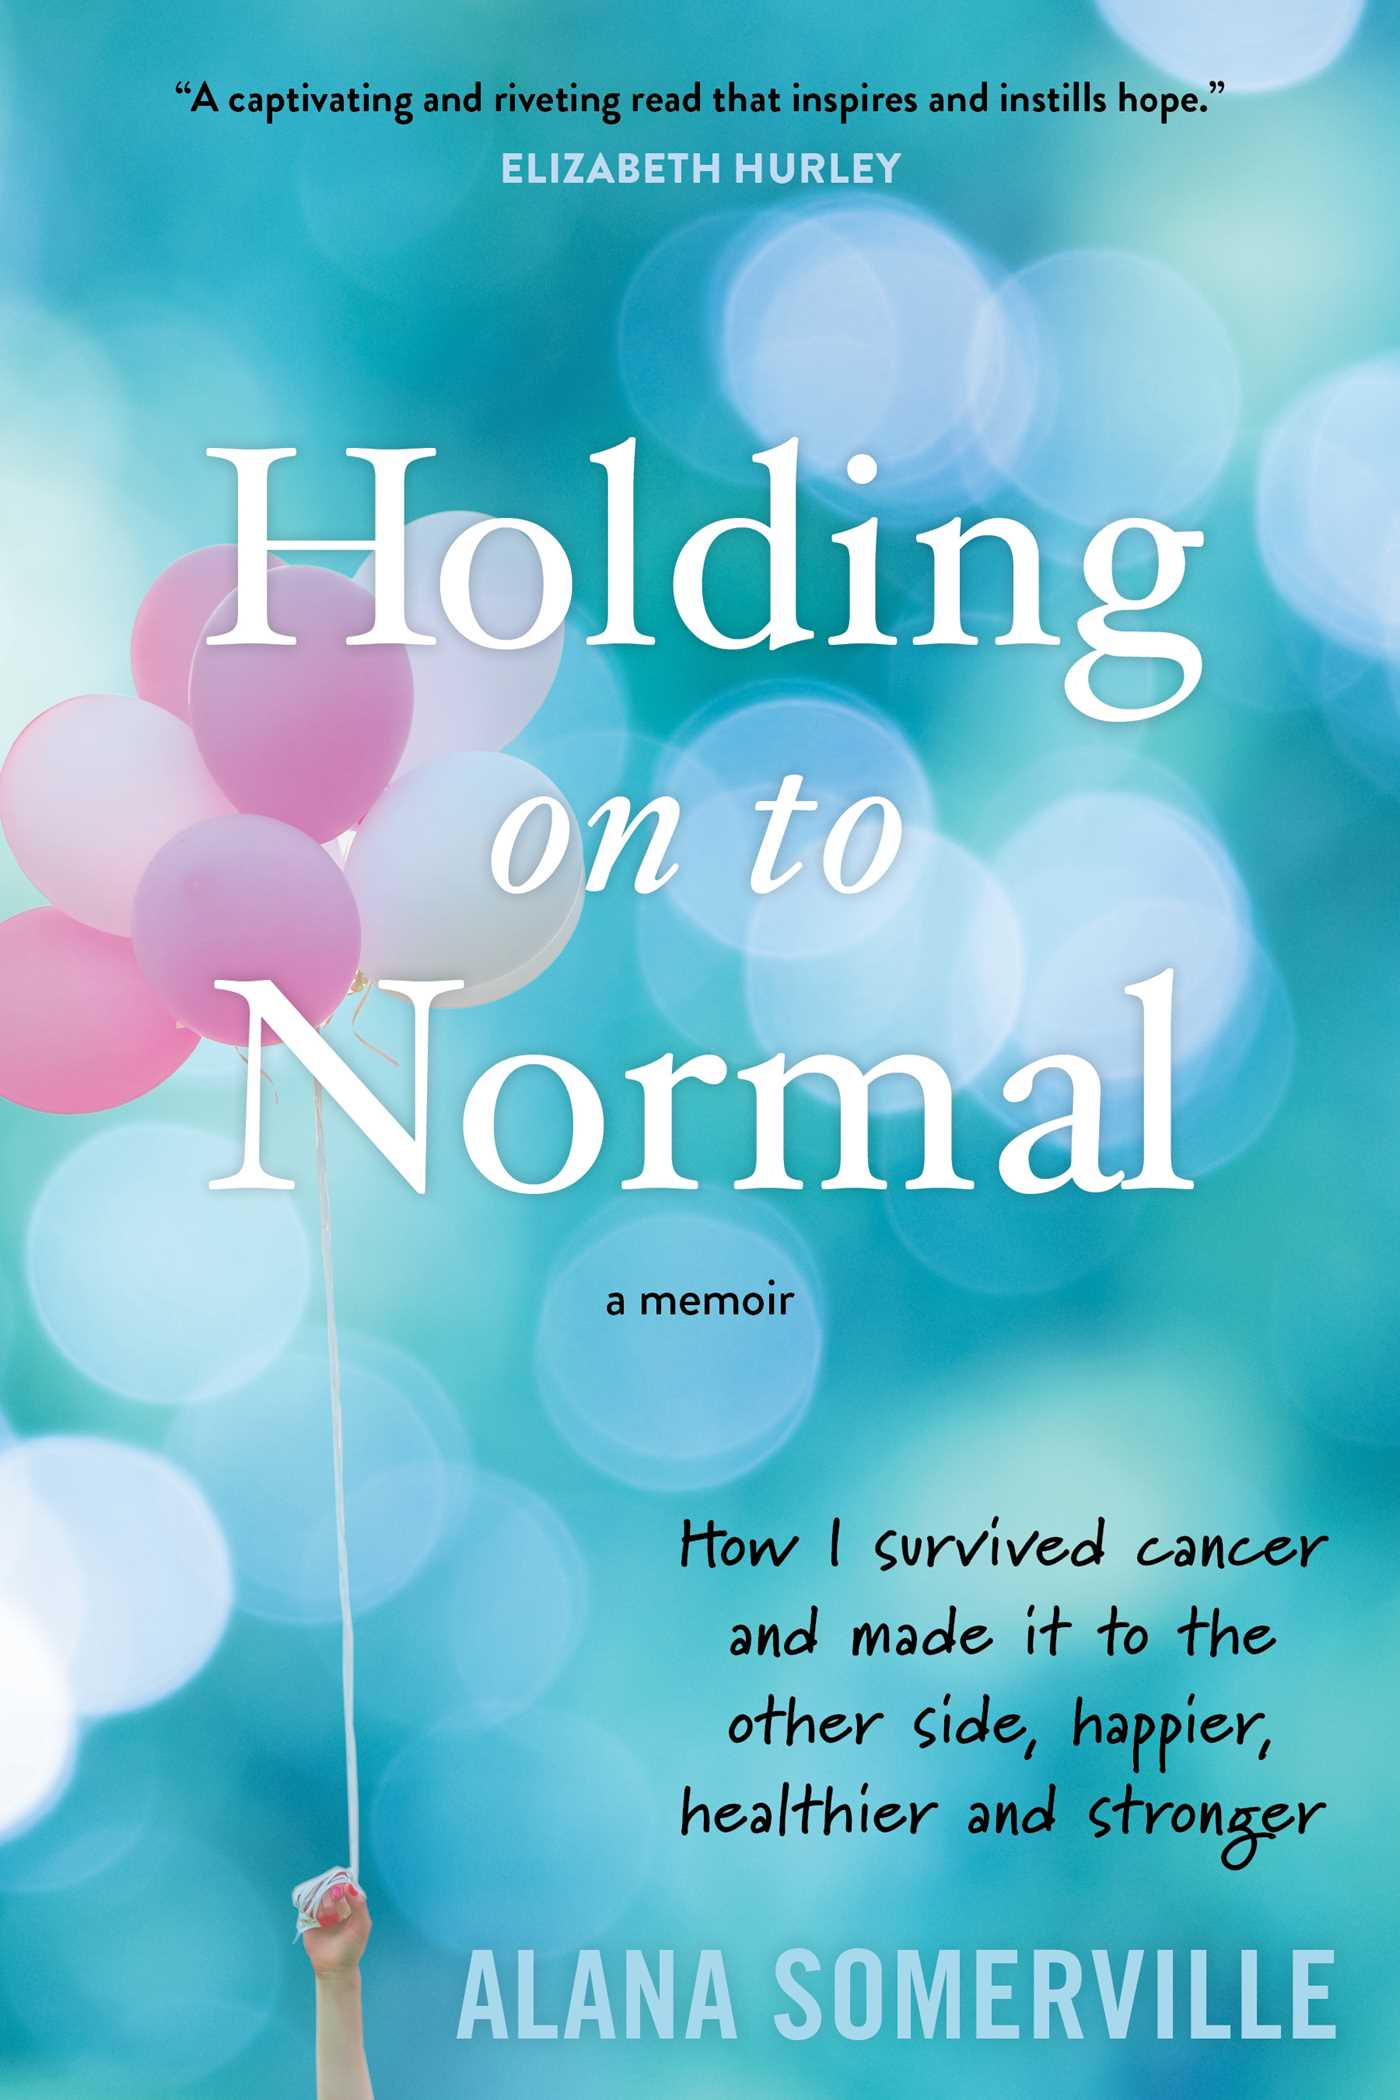 Holding on to normal 9781501168123 hr